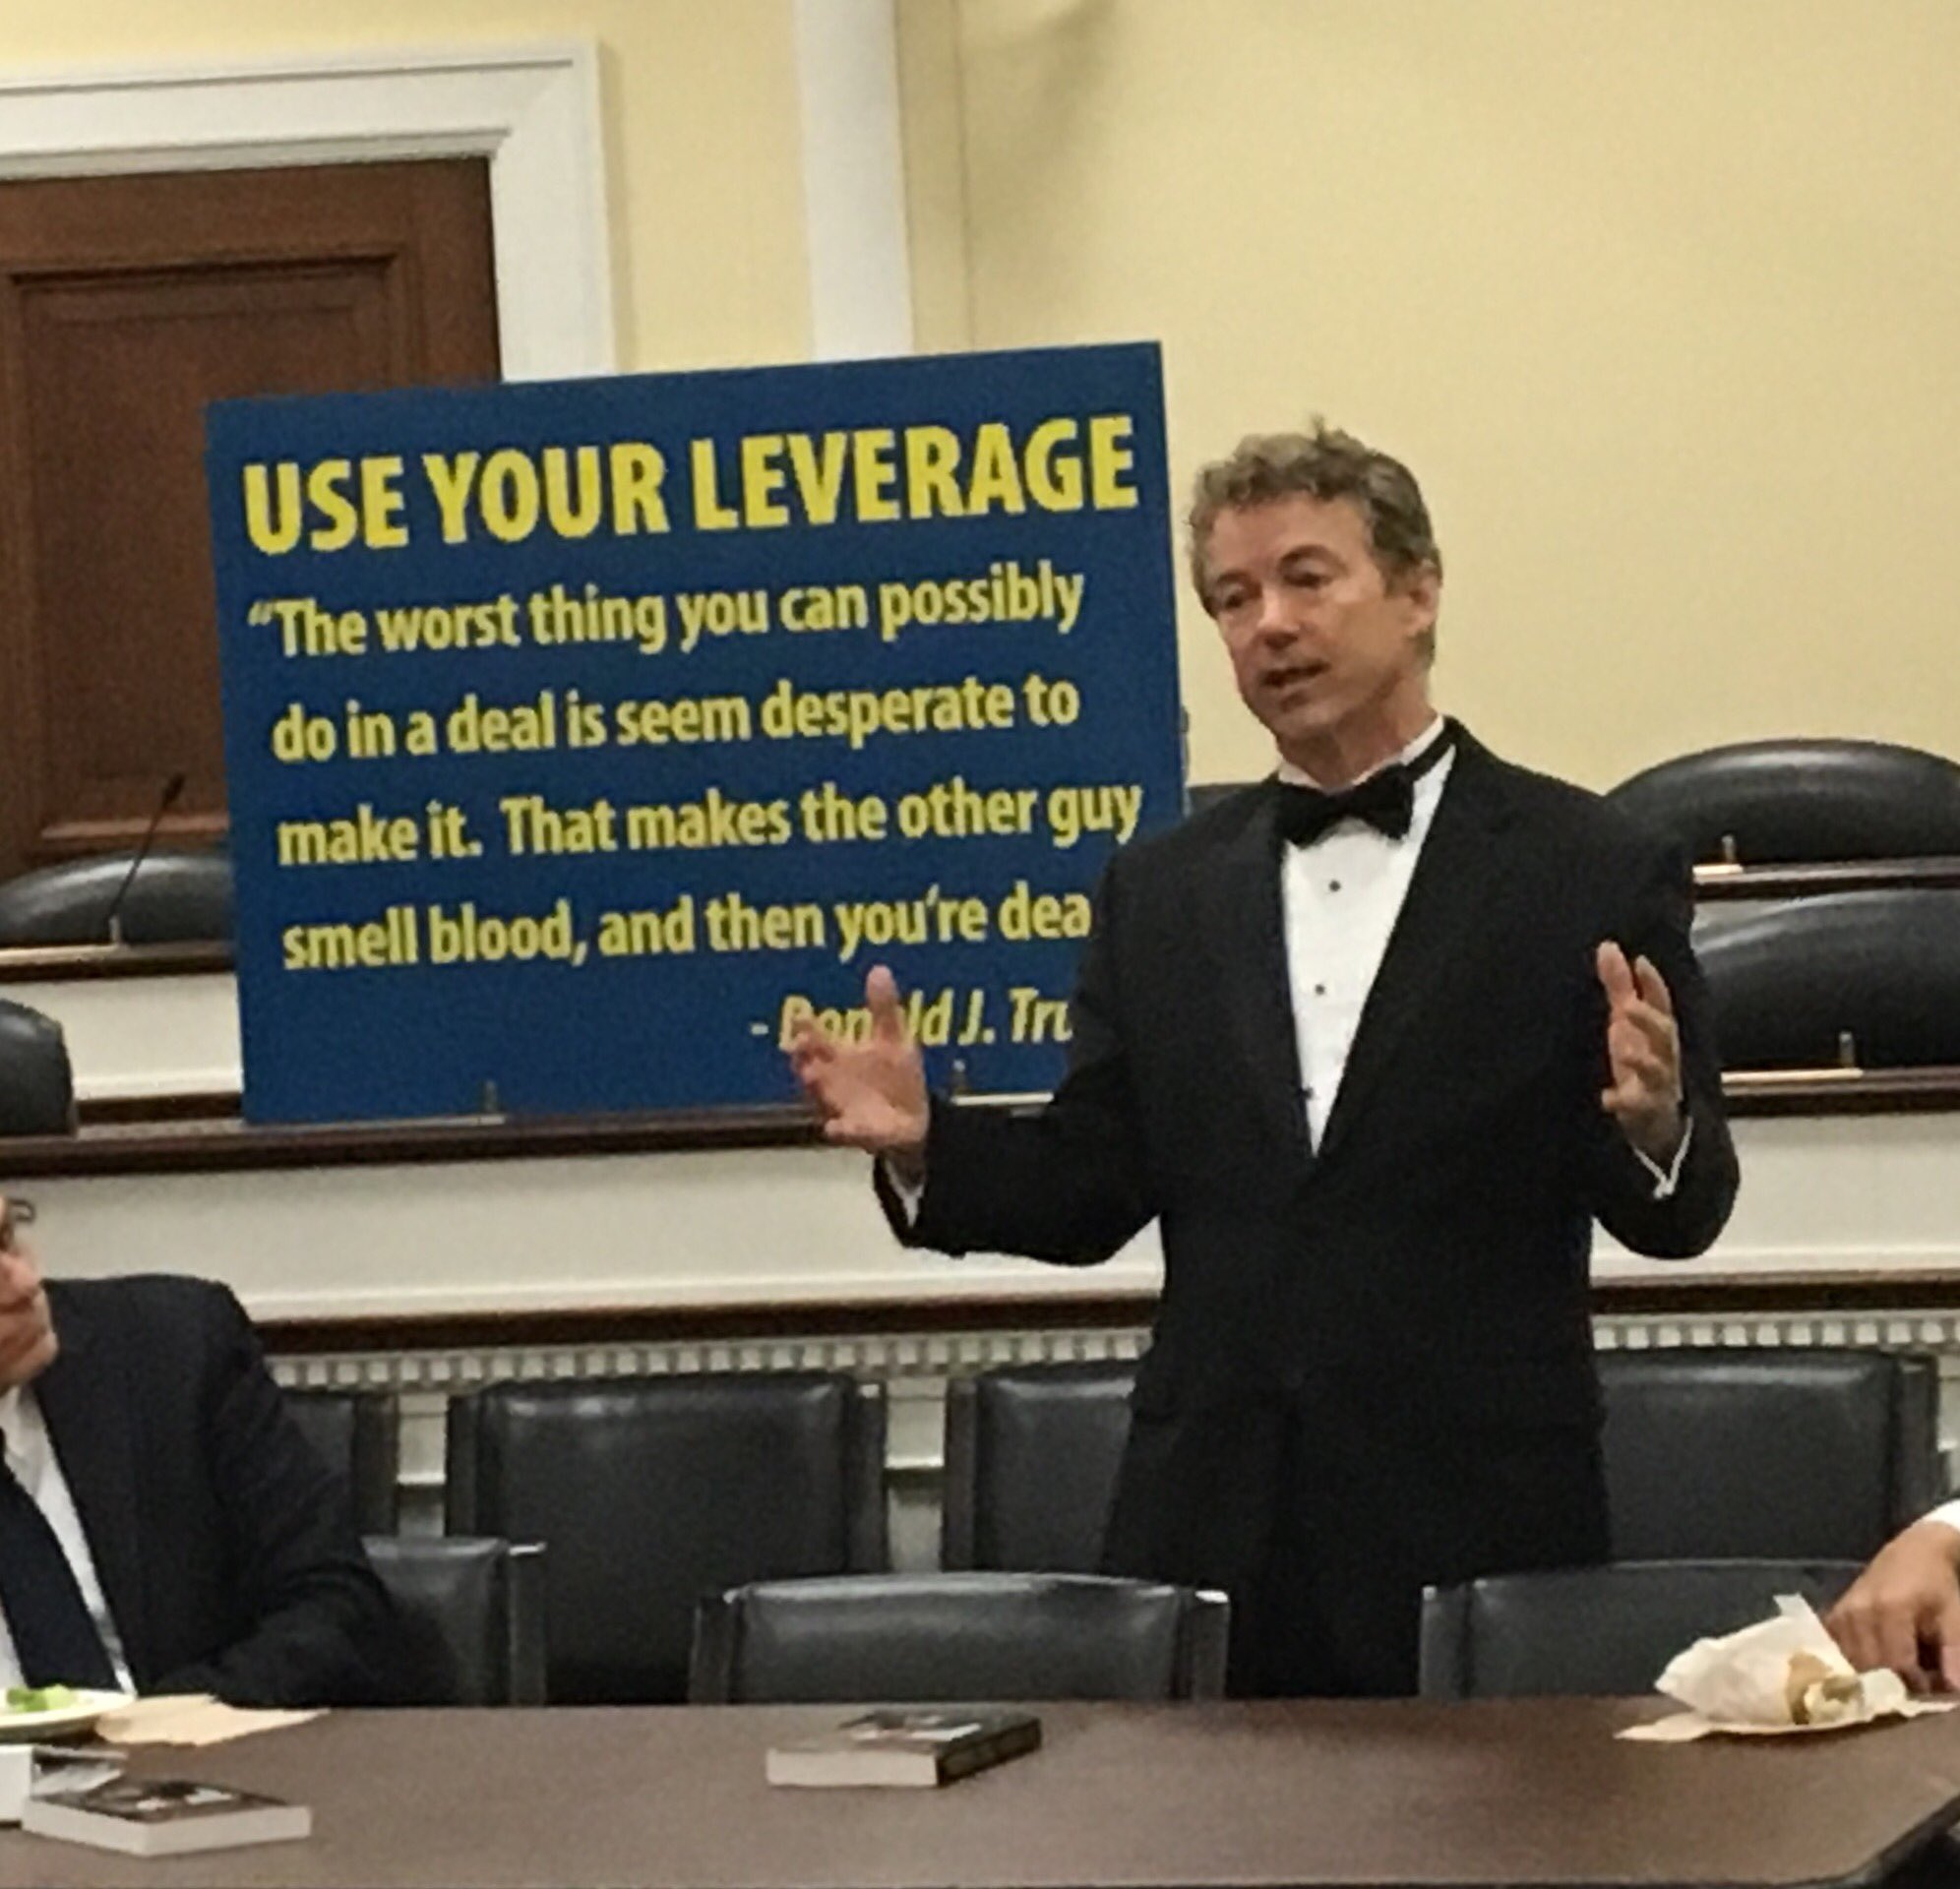 senator rand paul on twitter tonight i joined members of the senator rand paul on twitter tonight i joined members of the domcaucus to discuss how to defeat obamacare lite fullrepeal t co a7adpml3zb